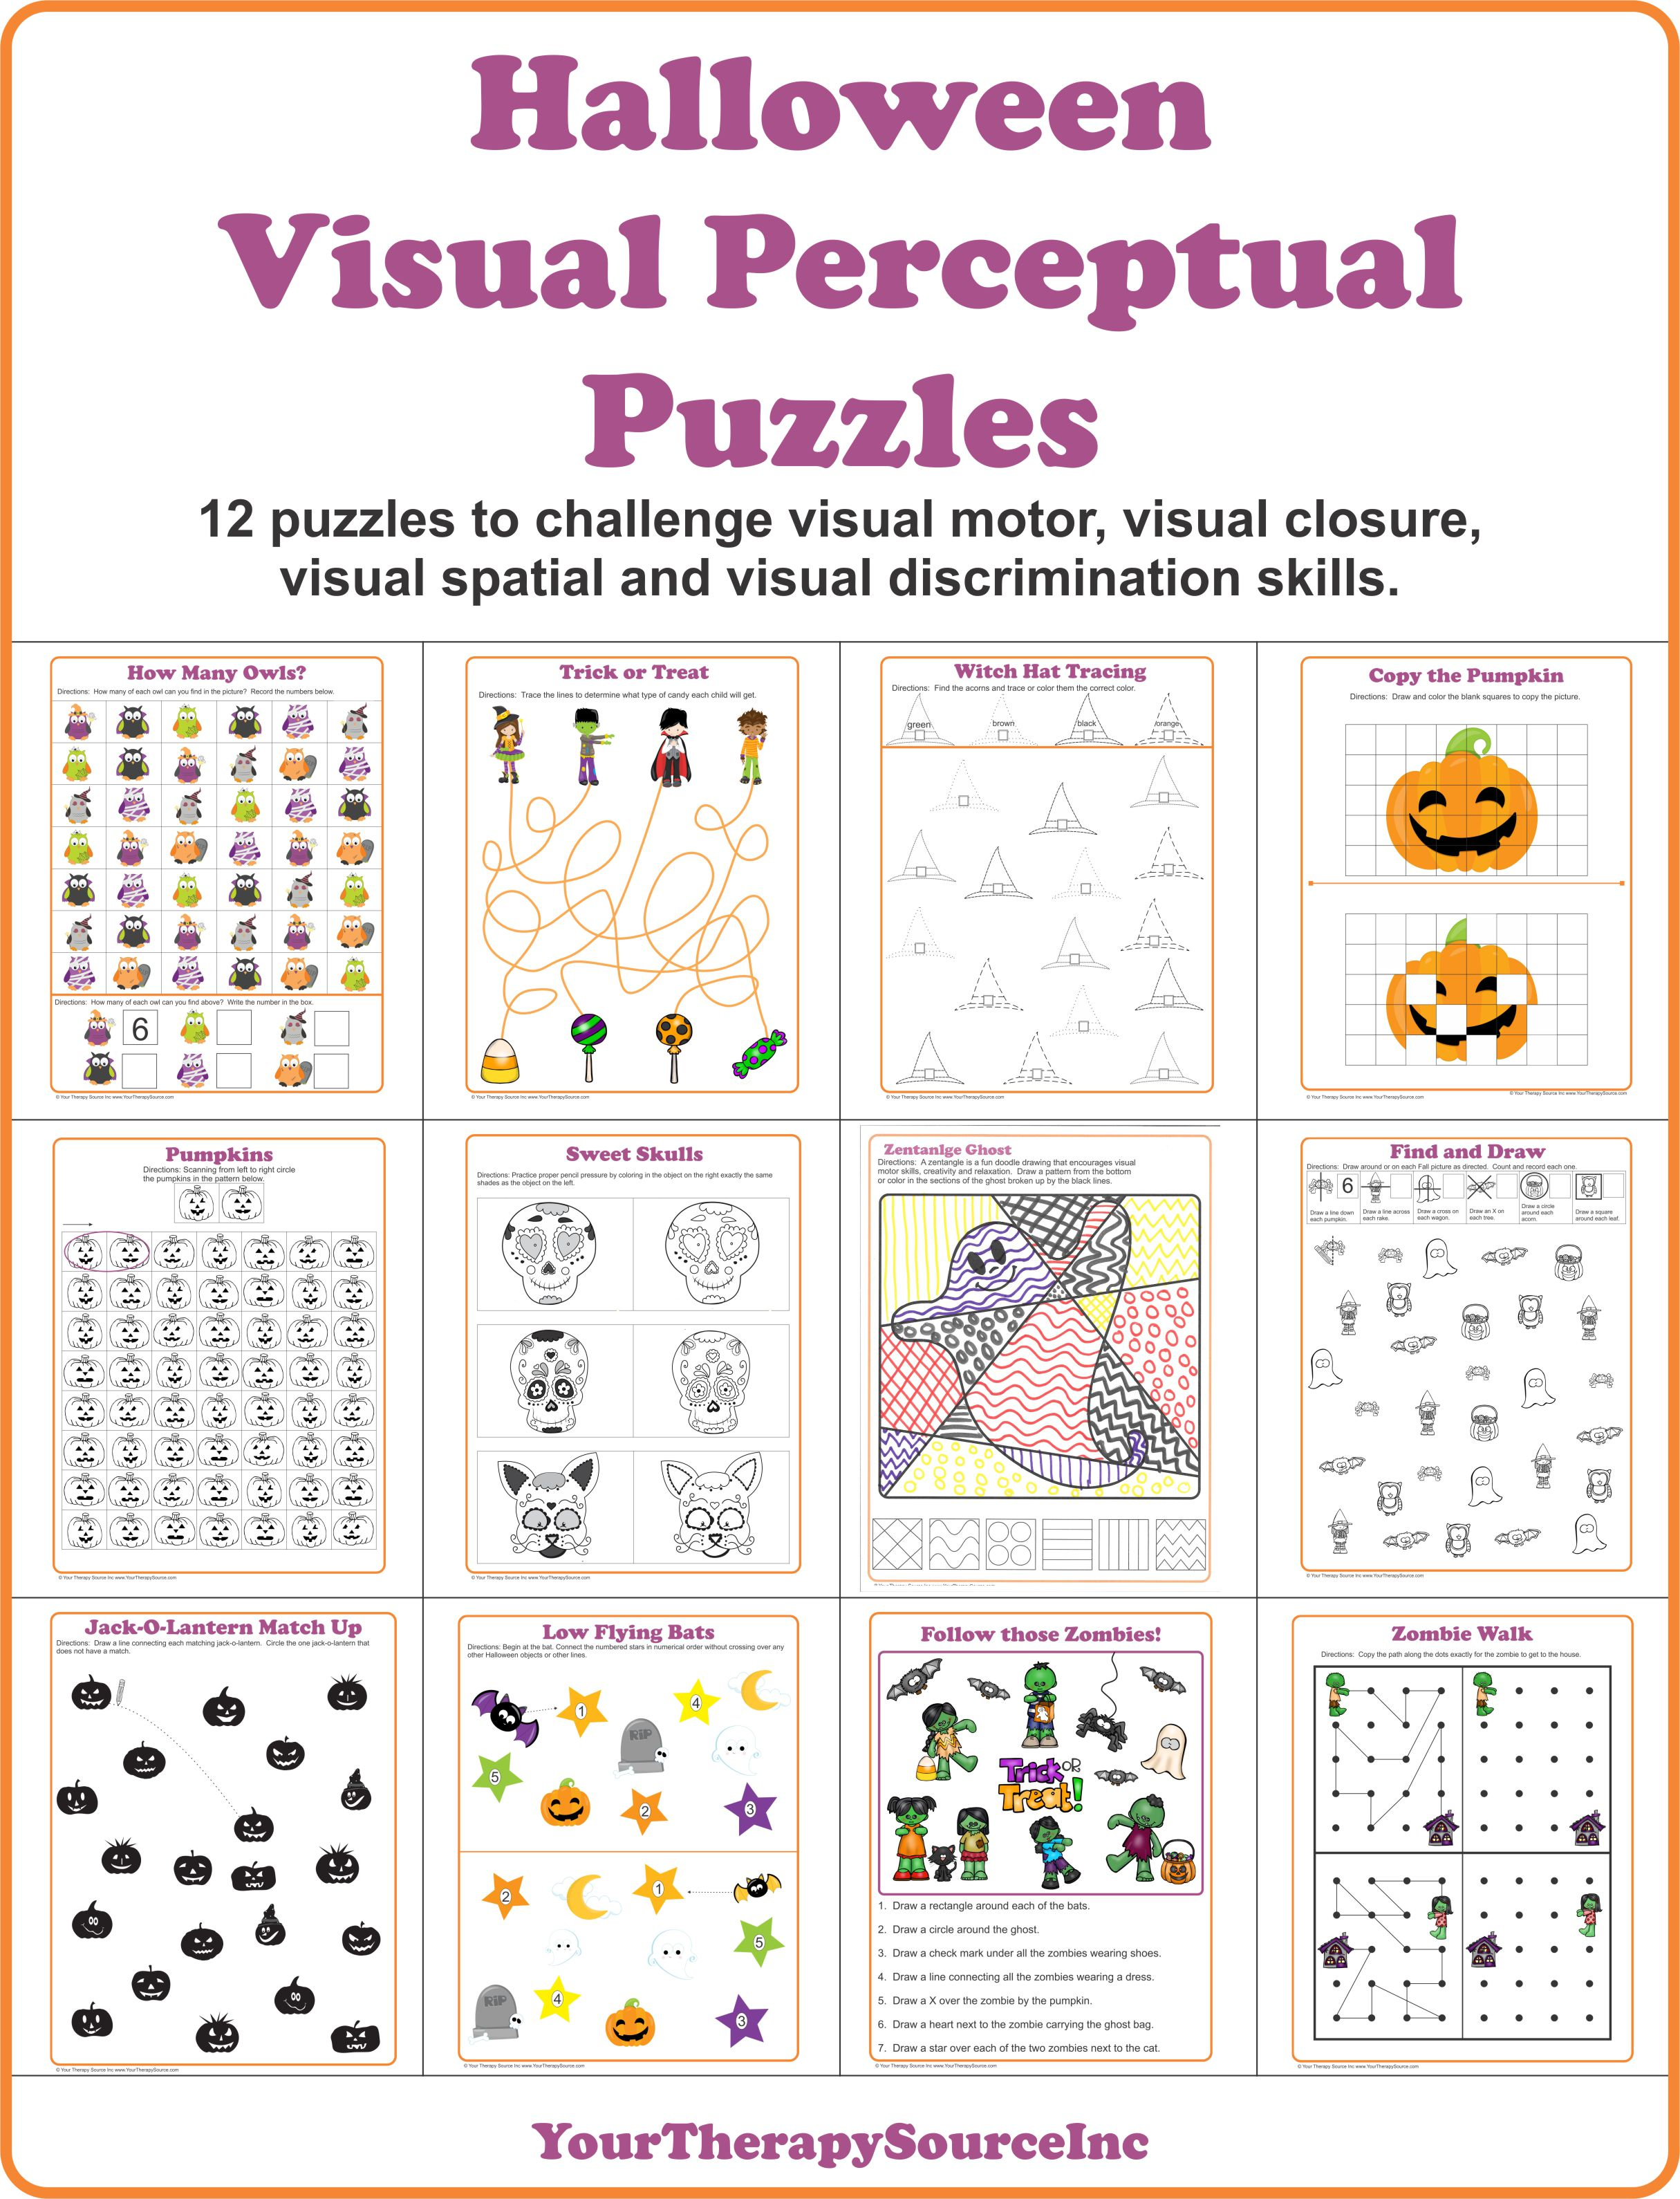 Worksheets Visual Perceptual Skills Worksheets halloween visual perceptual puzzles your therapy source